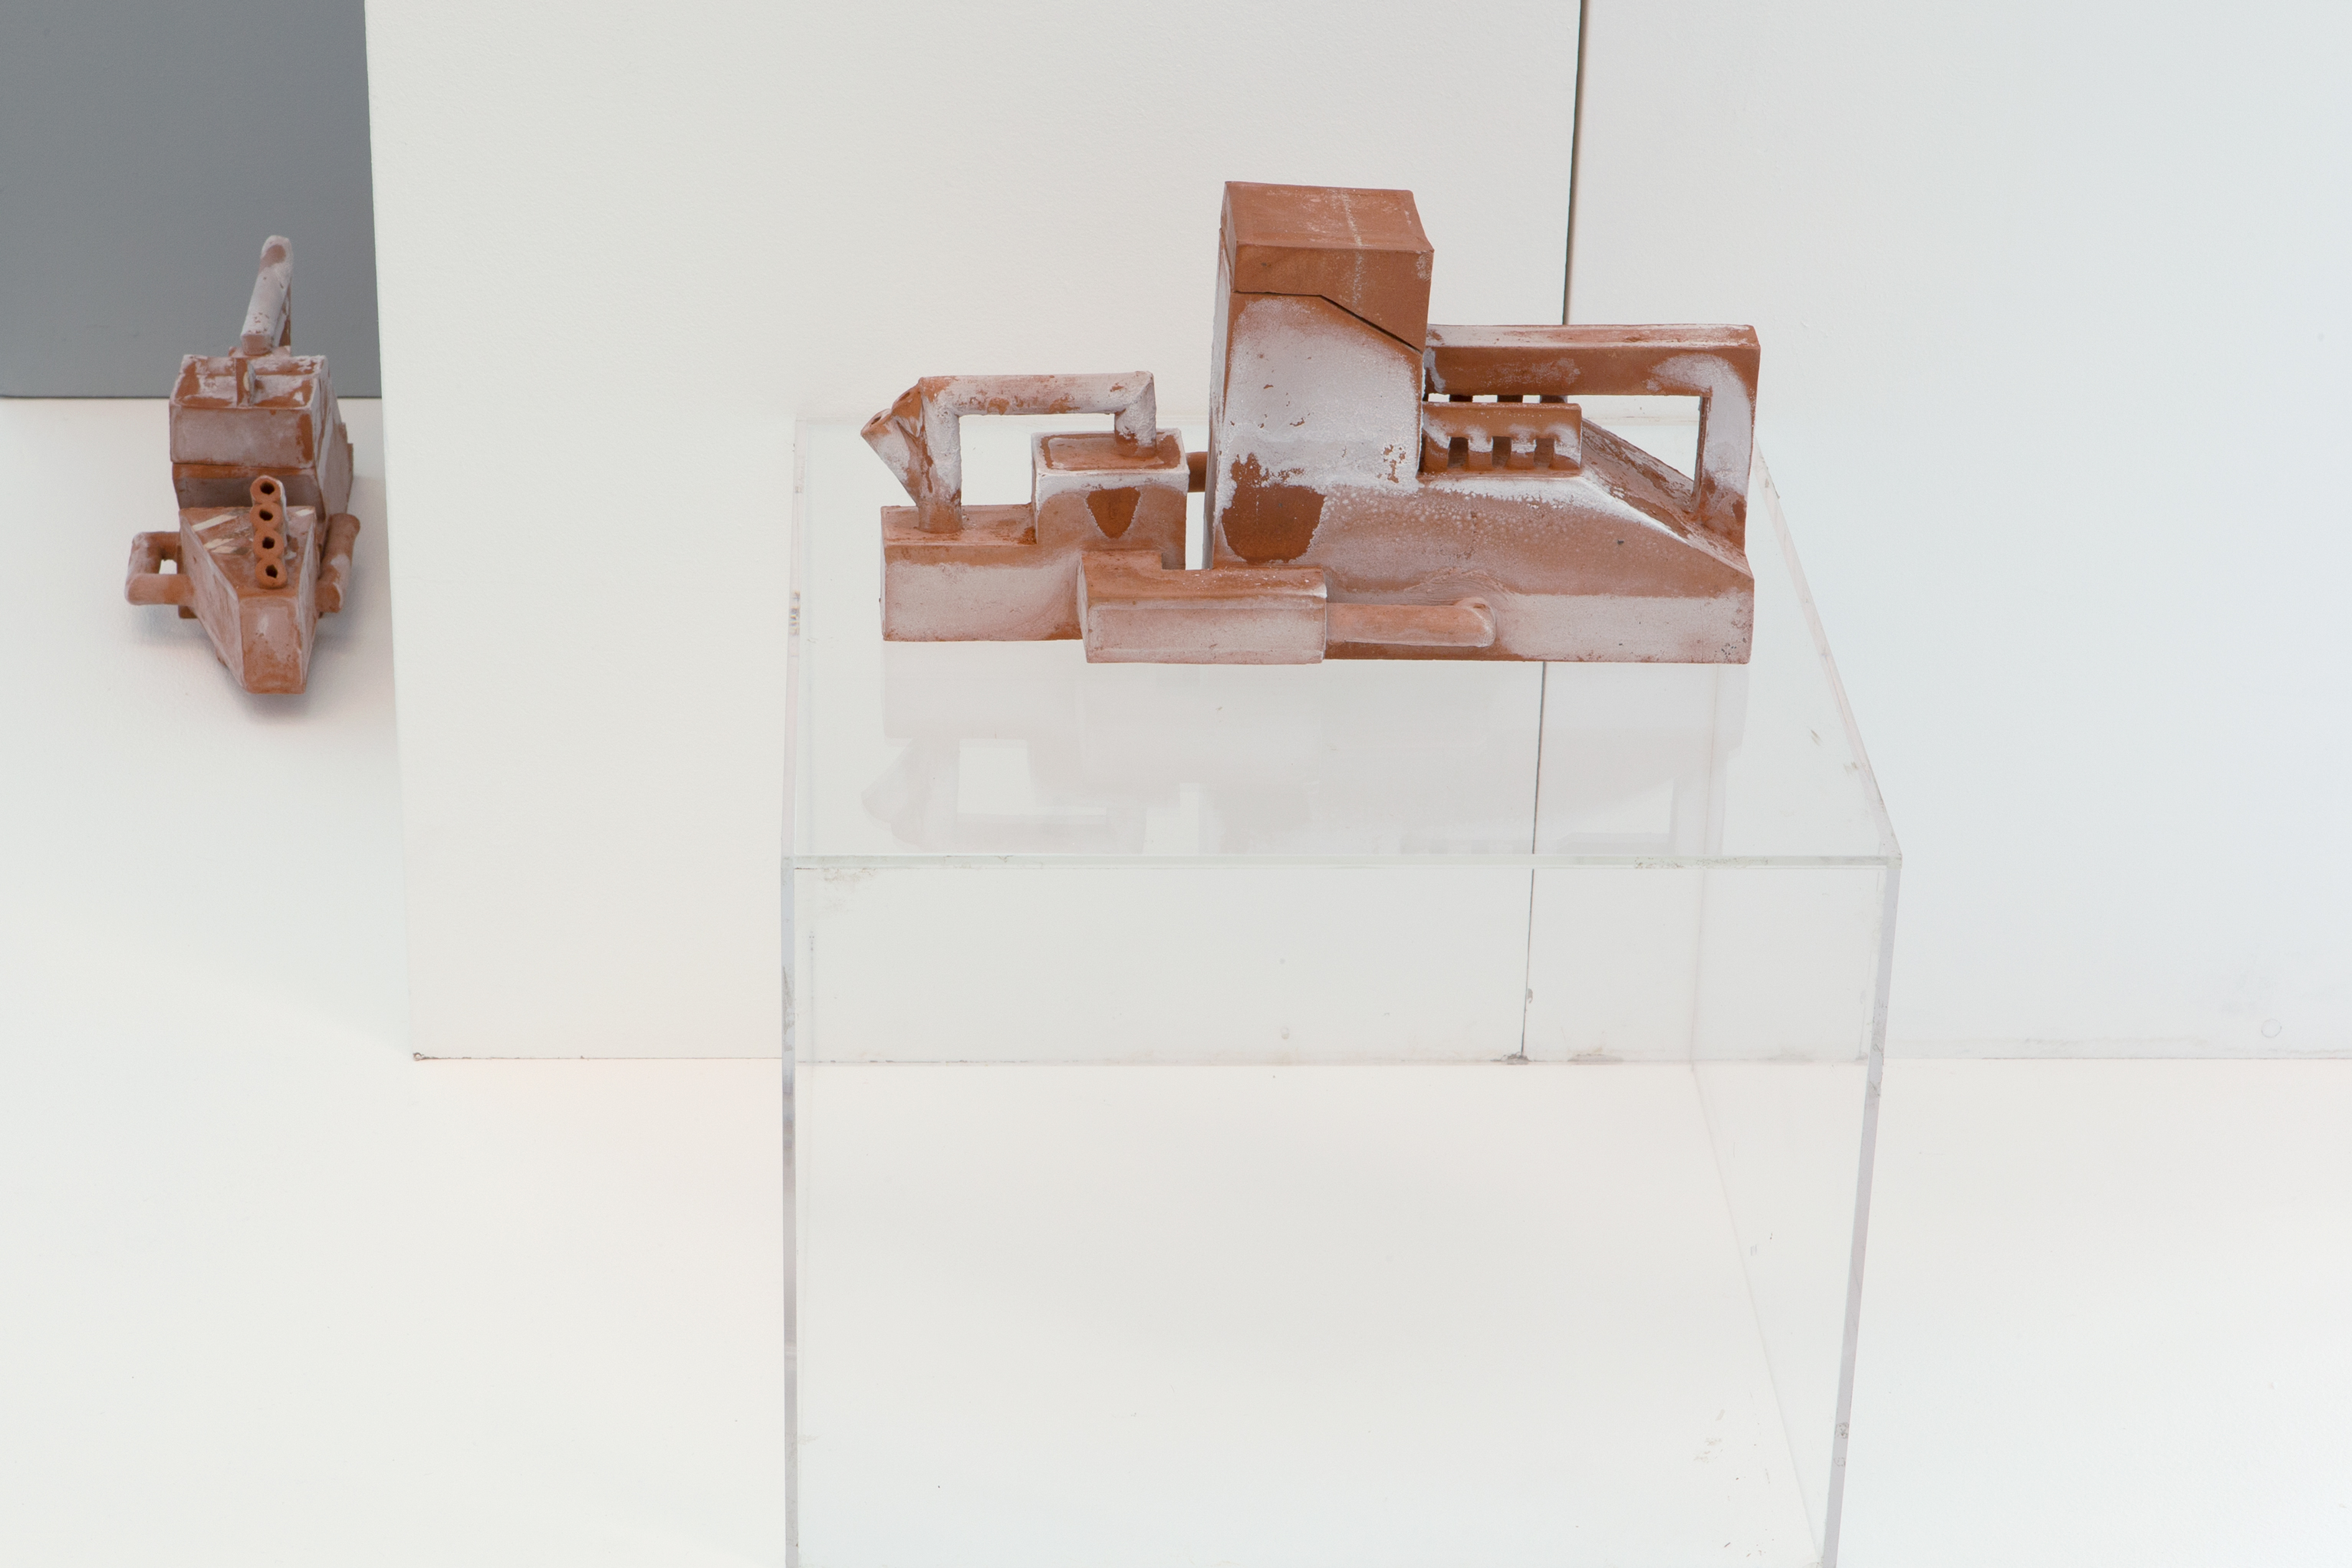 Laurence Sturla, At the Clearway, 2019, unglazed earthenware clay, salt, 12 x 34 x 17 cm